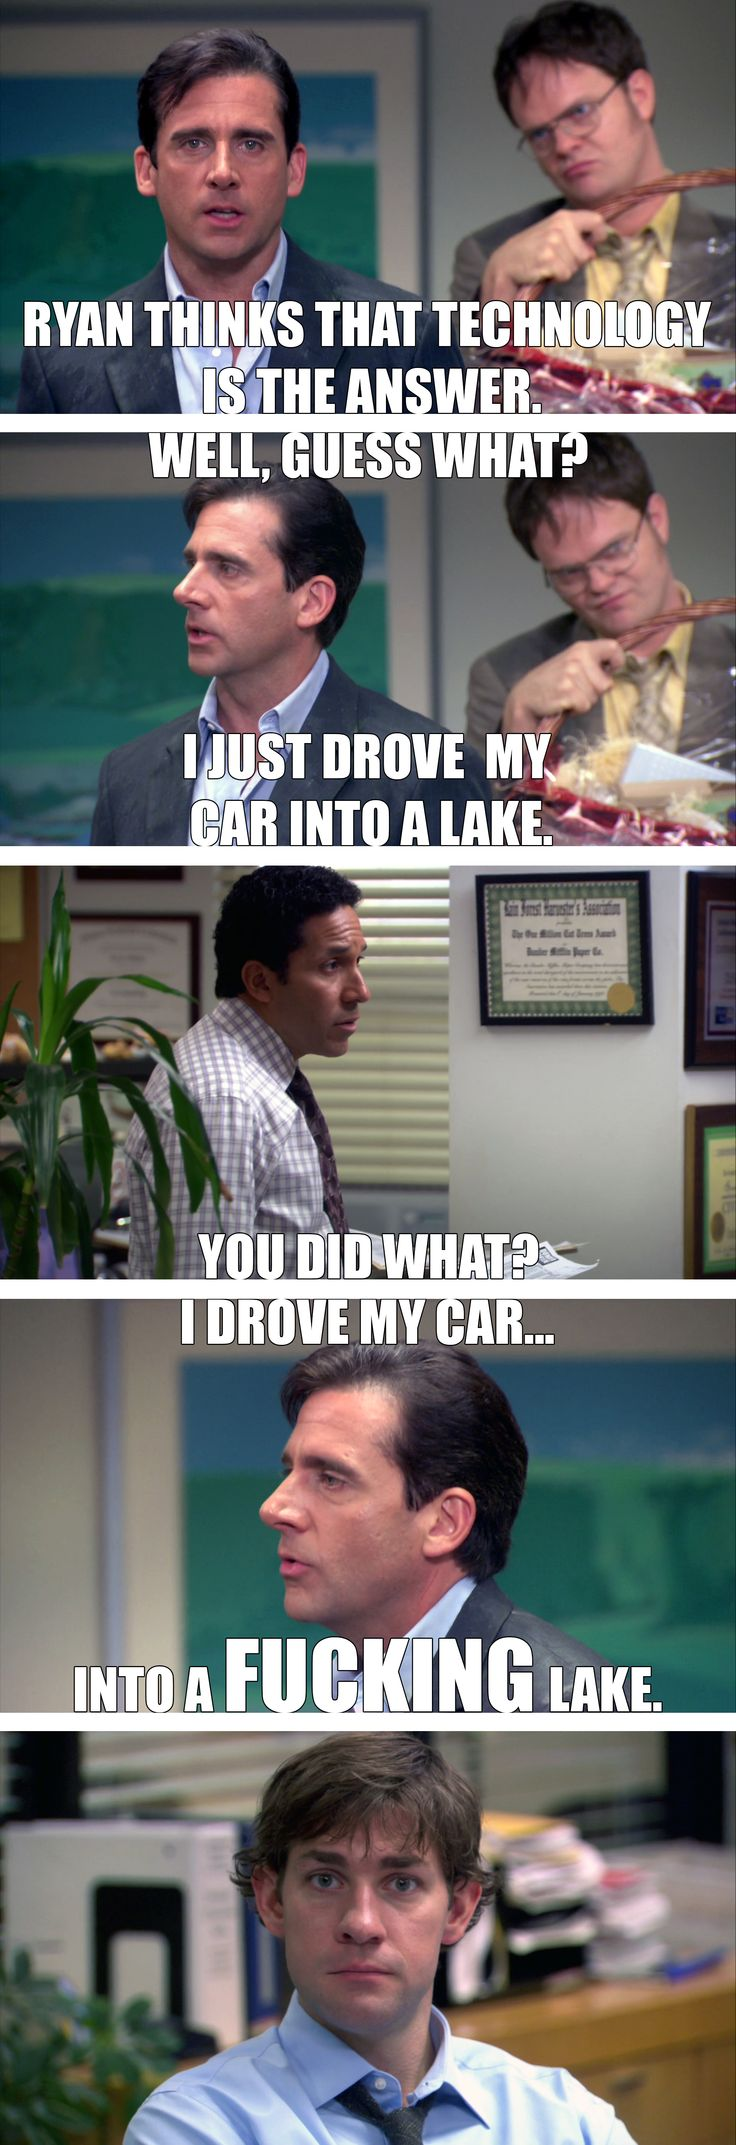 Michael Scott (Steve Carell) drives his car into a lake on The Office. Dwight Schrute (Rainn Wilson), Oscar Martinez (Oscar Nunez), and Jim Halpert (John Krasinski) look on incredulously.